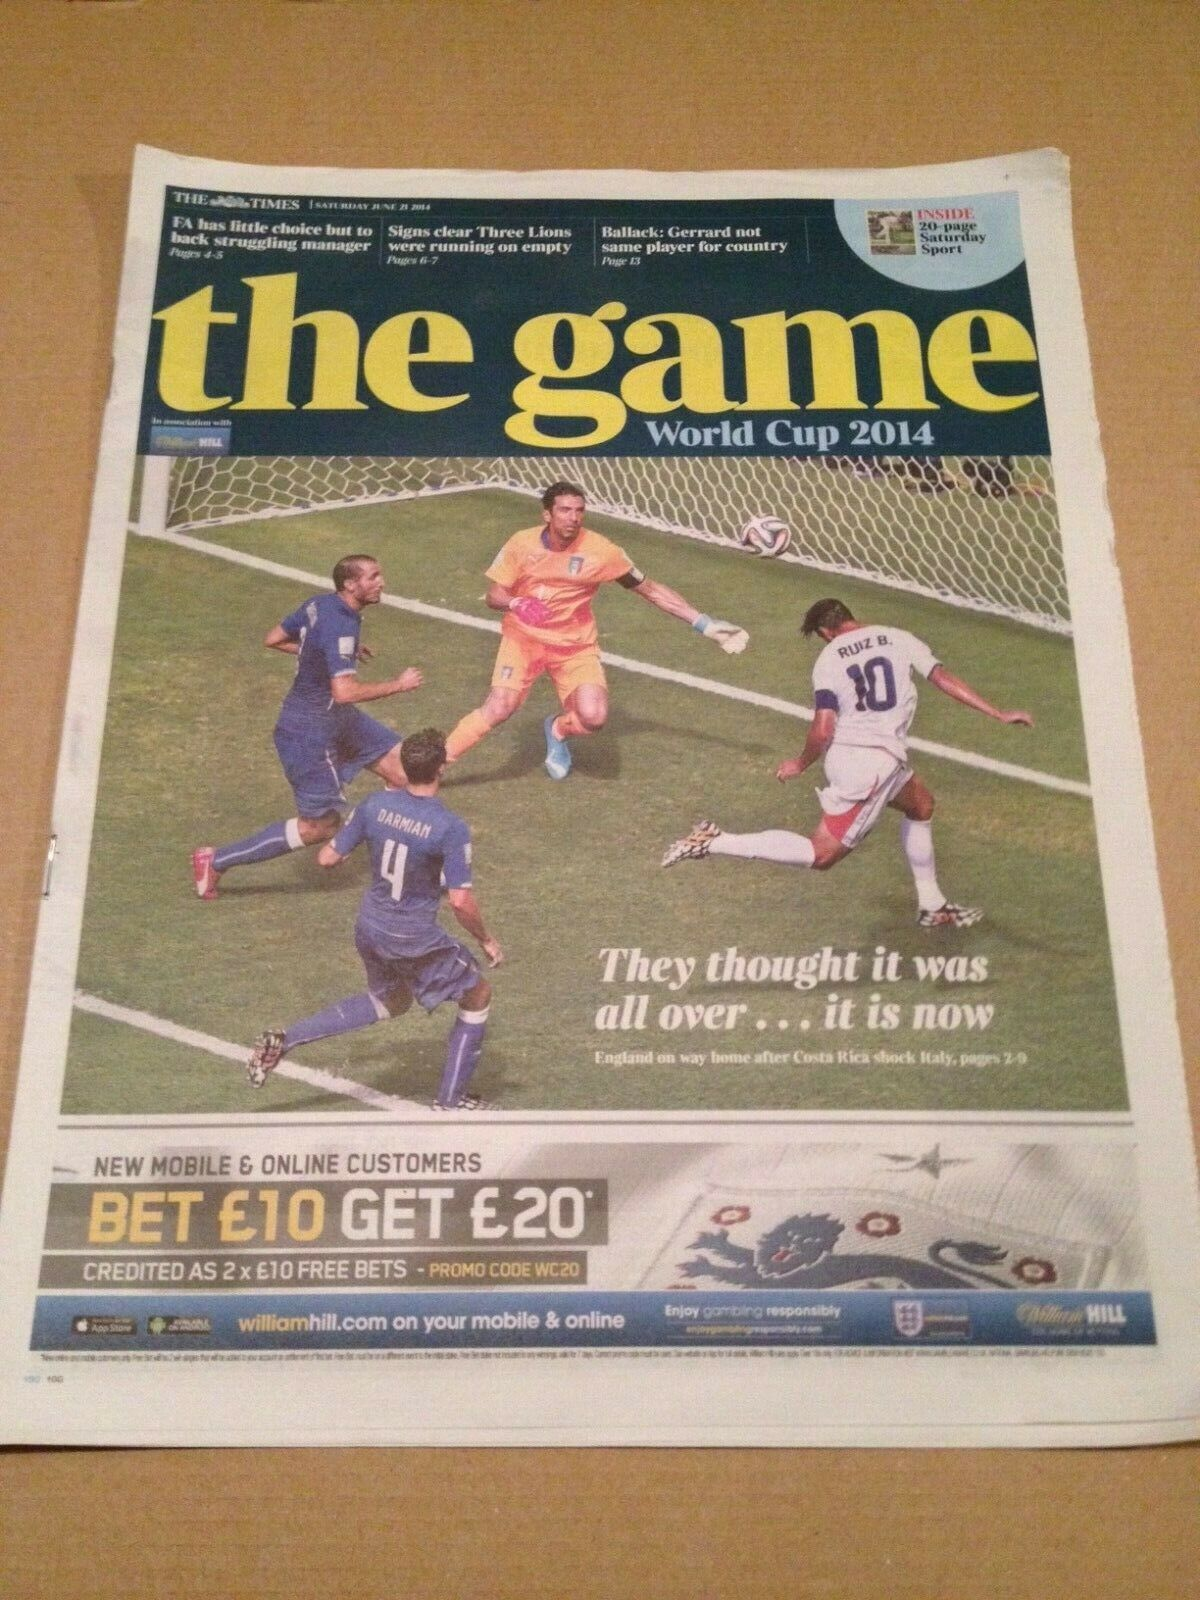 THE GAME WORLD CUP FINALS BRAZIL 2014 THE TIMES NEWSPAPER SUPPLEMENT 21/06/14